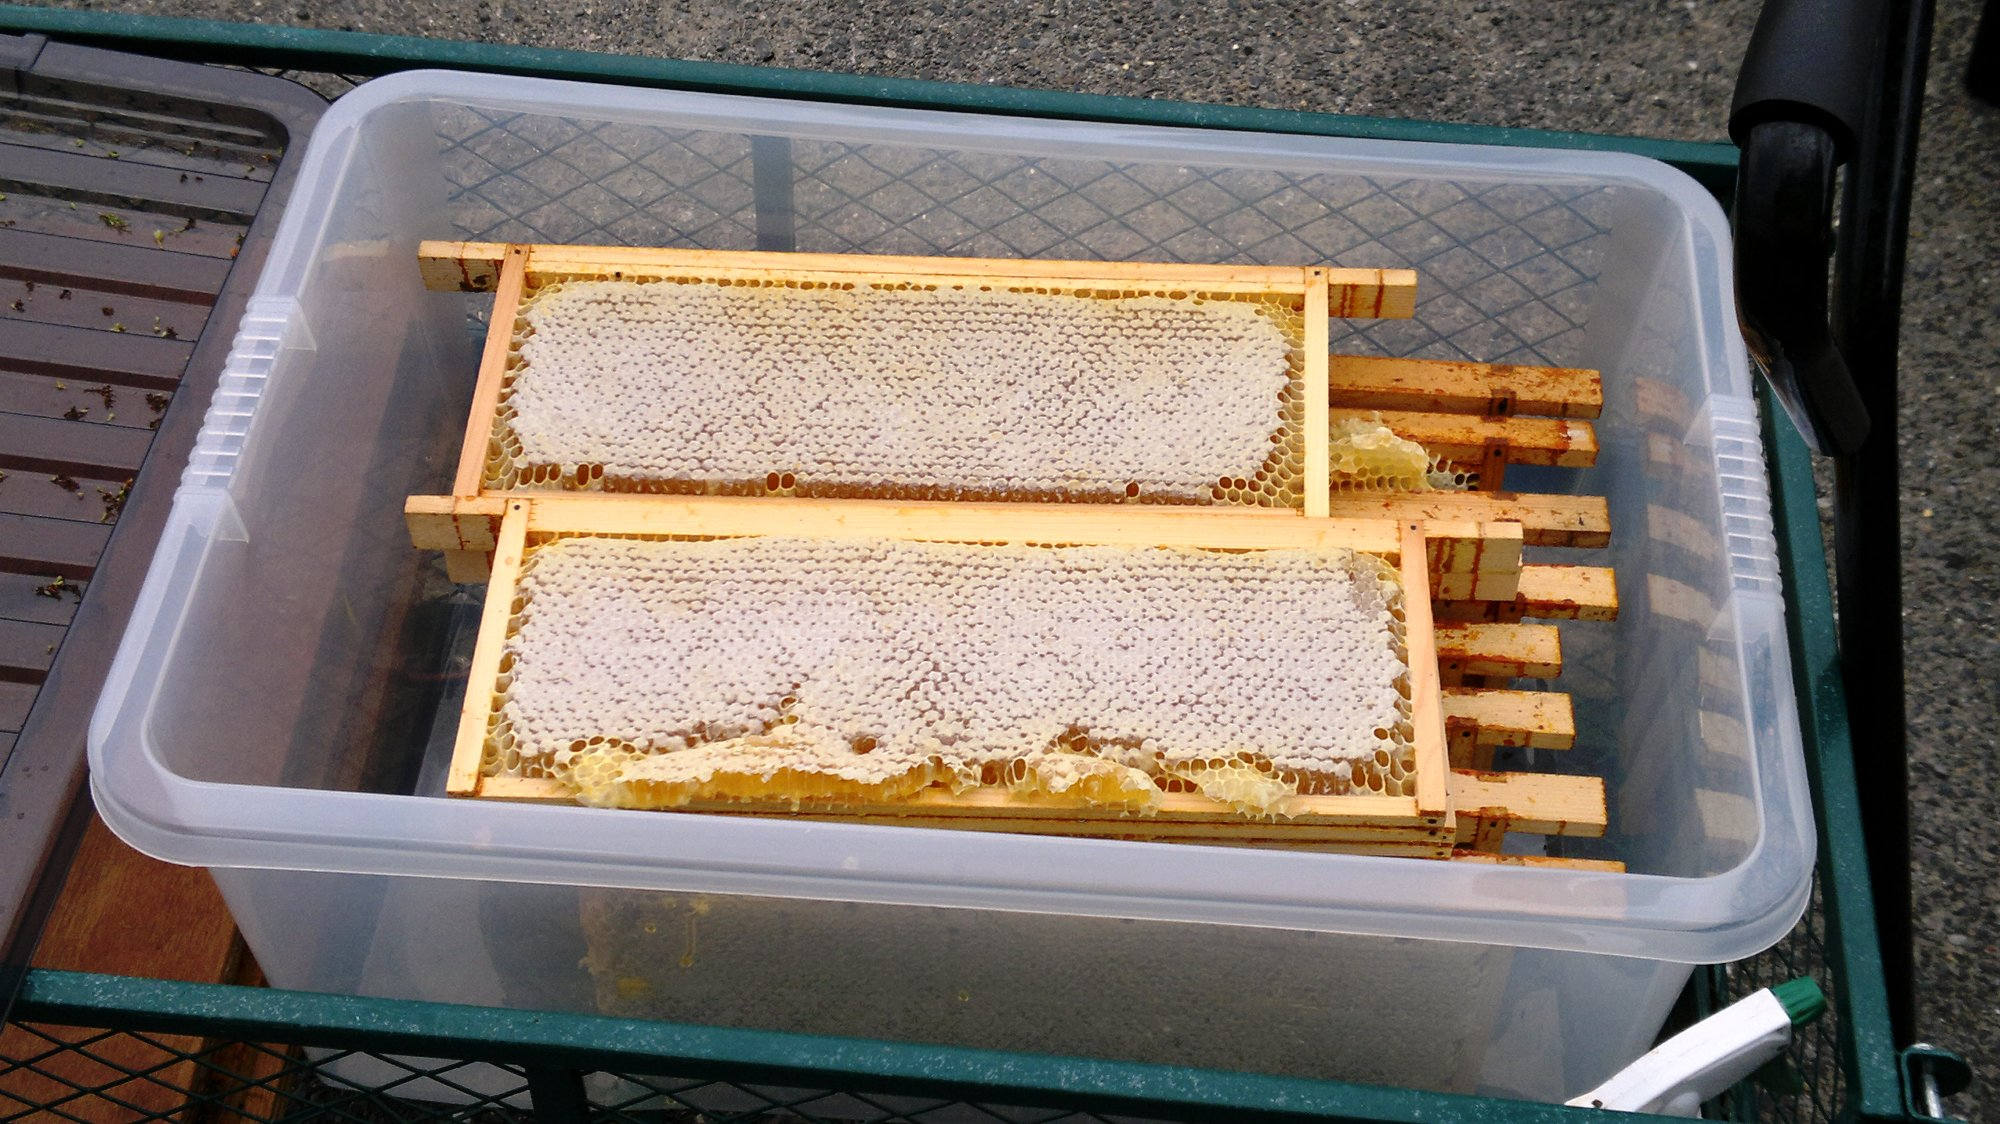 Ten frames of delicious, rich, and floral honey